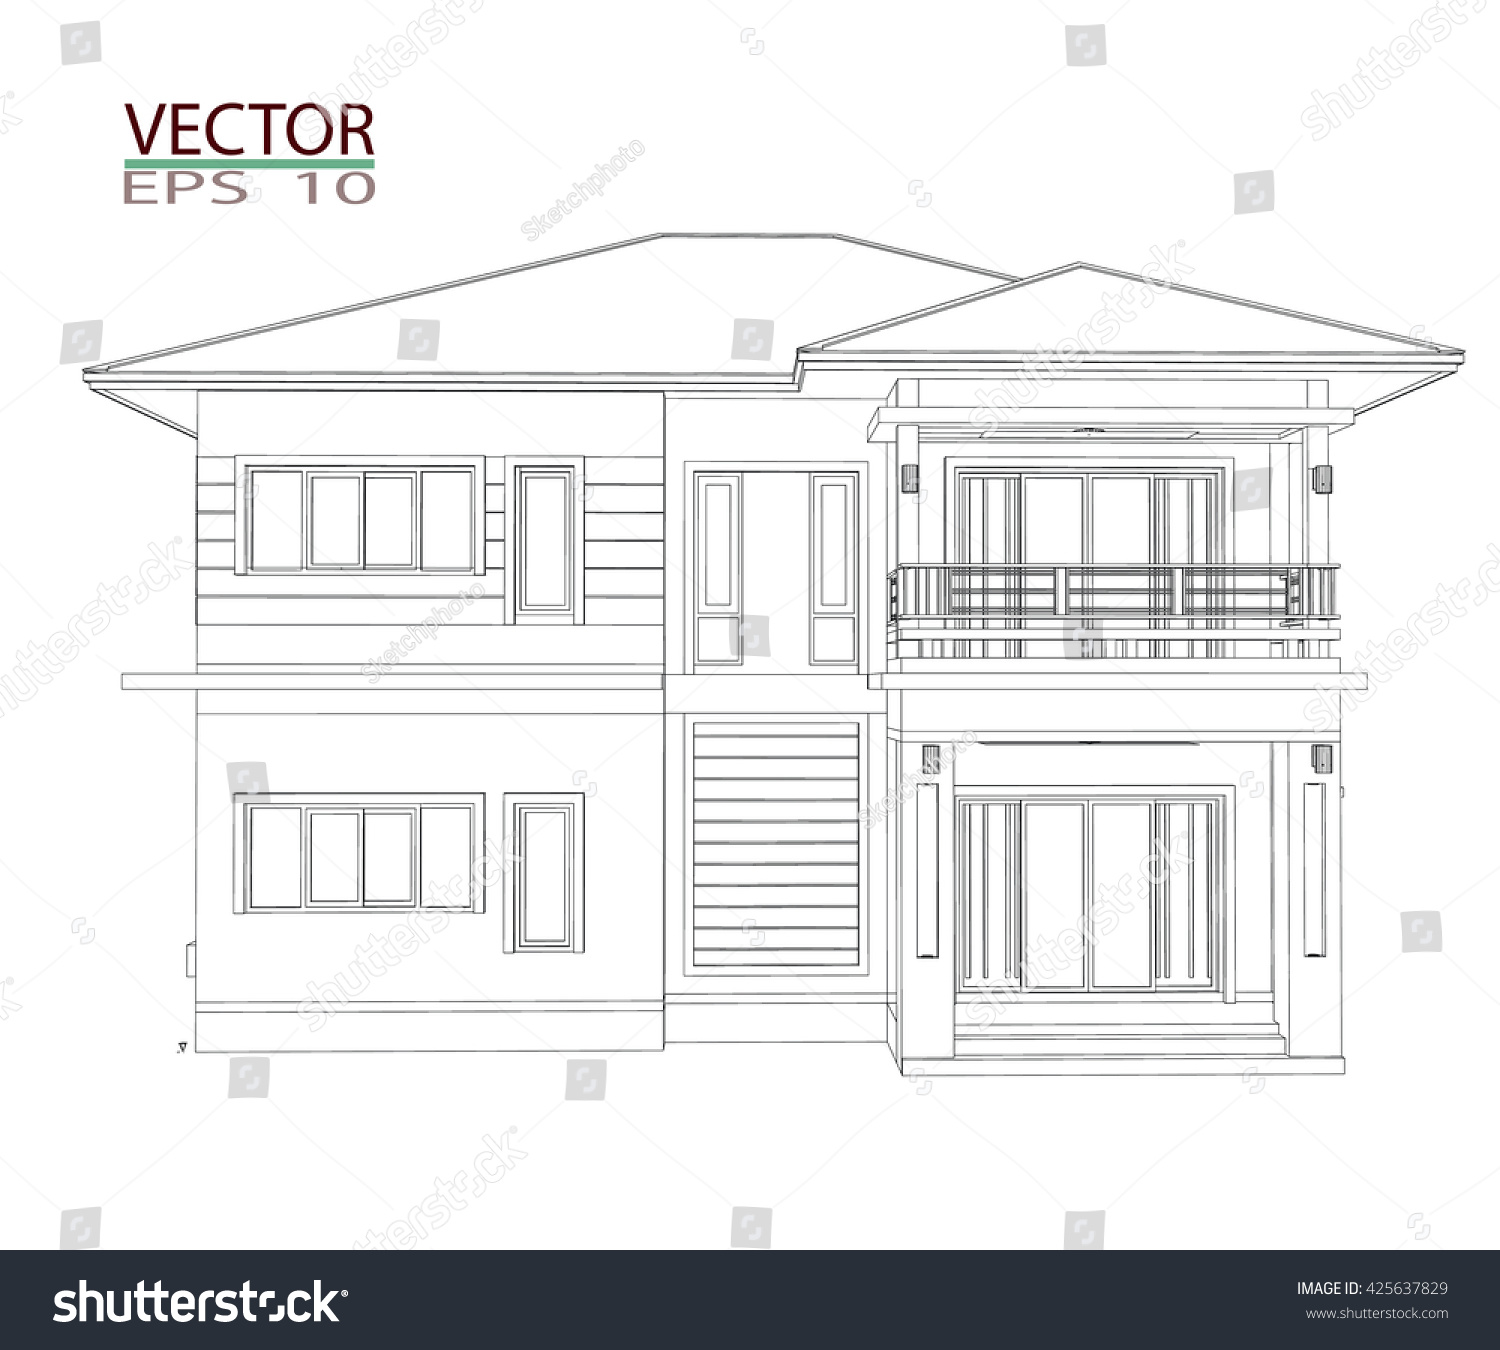 Drawings 3d Home Design Construction Stock Vector 425637829 ...